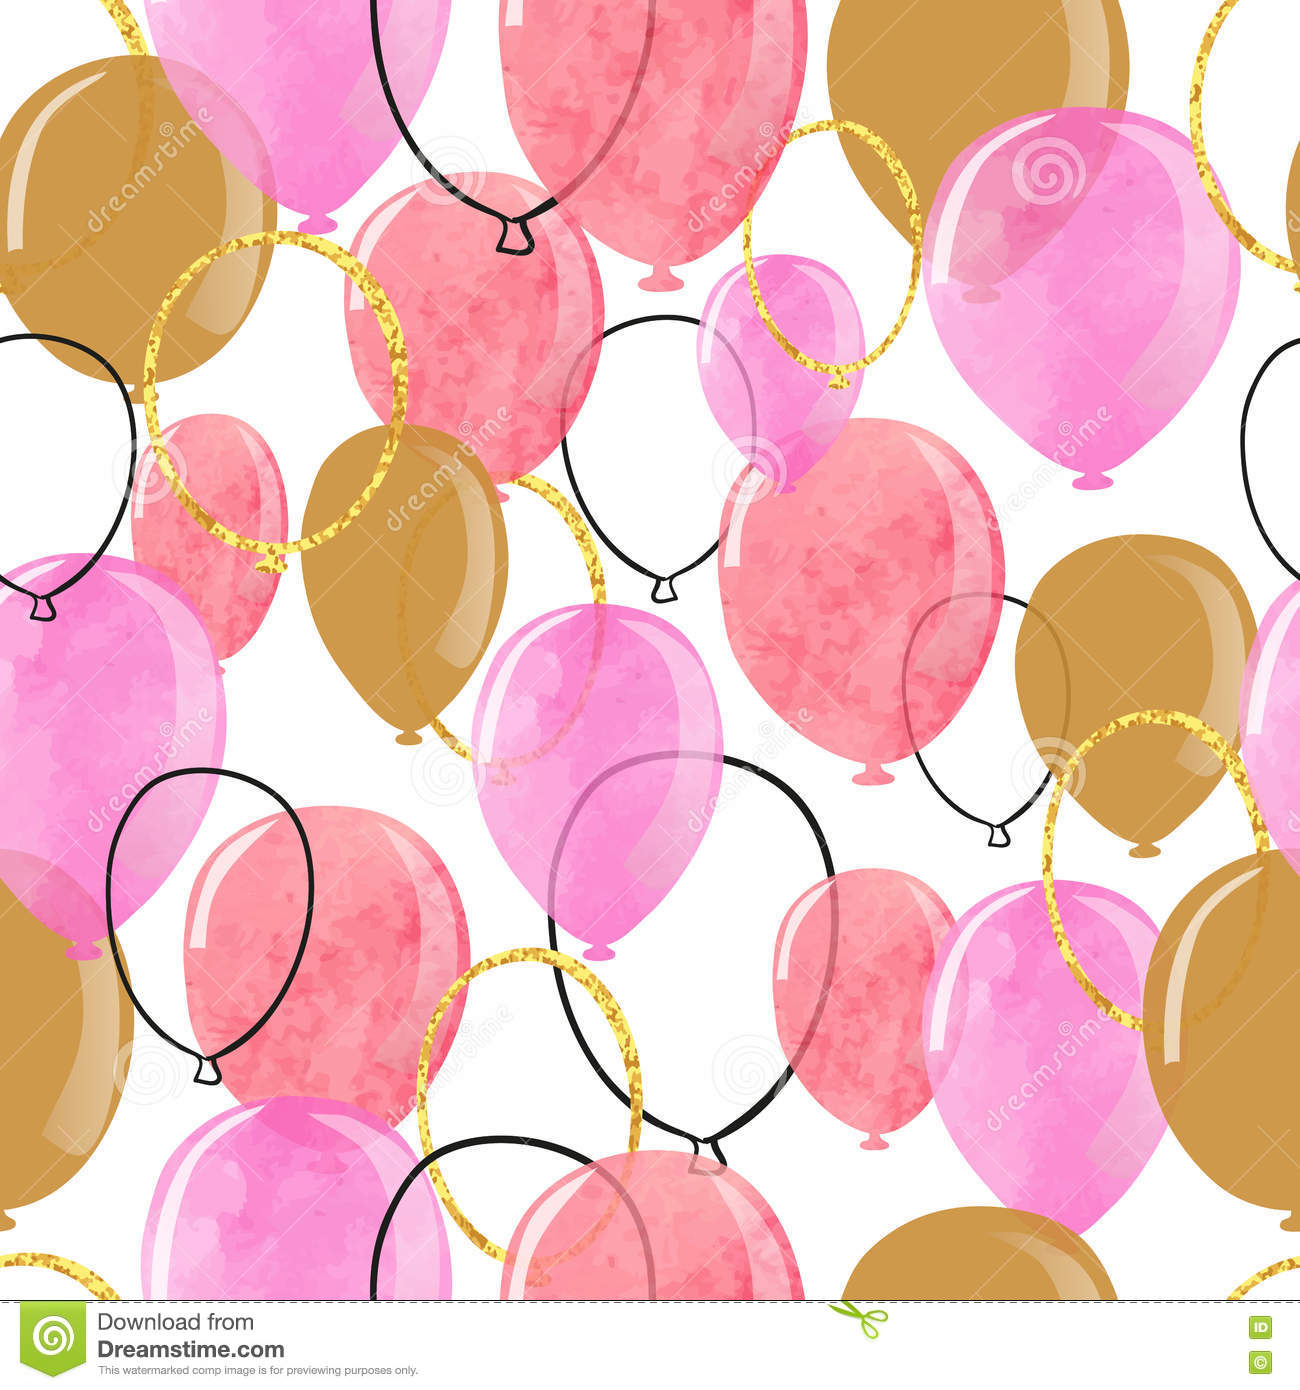 Watercolor pink and glittering gold balloons seamless pattern.